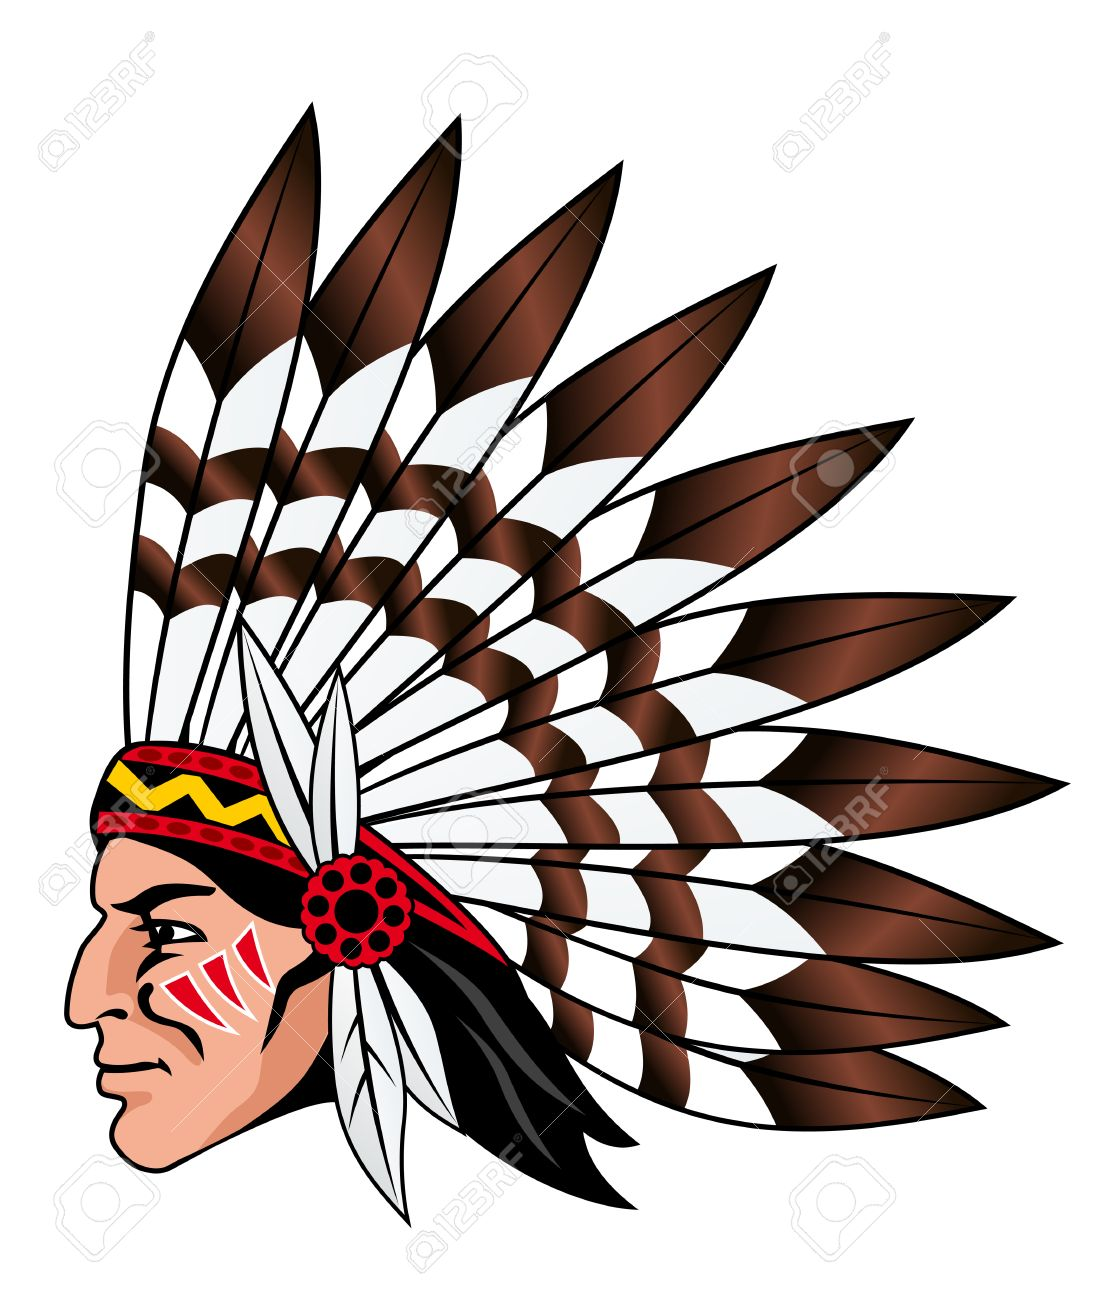 Indian chief head clipart transparent stock Native american indian chief head clip art image clipartix - Clipartix transparent stock